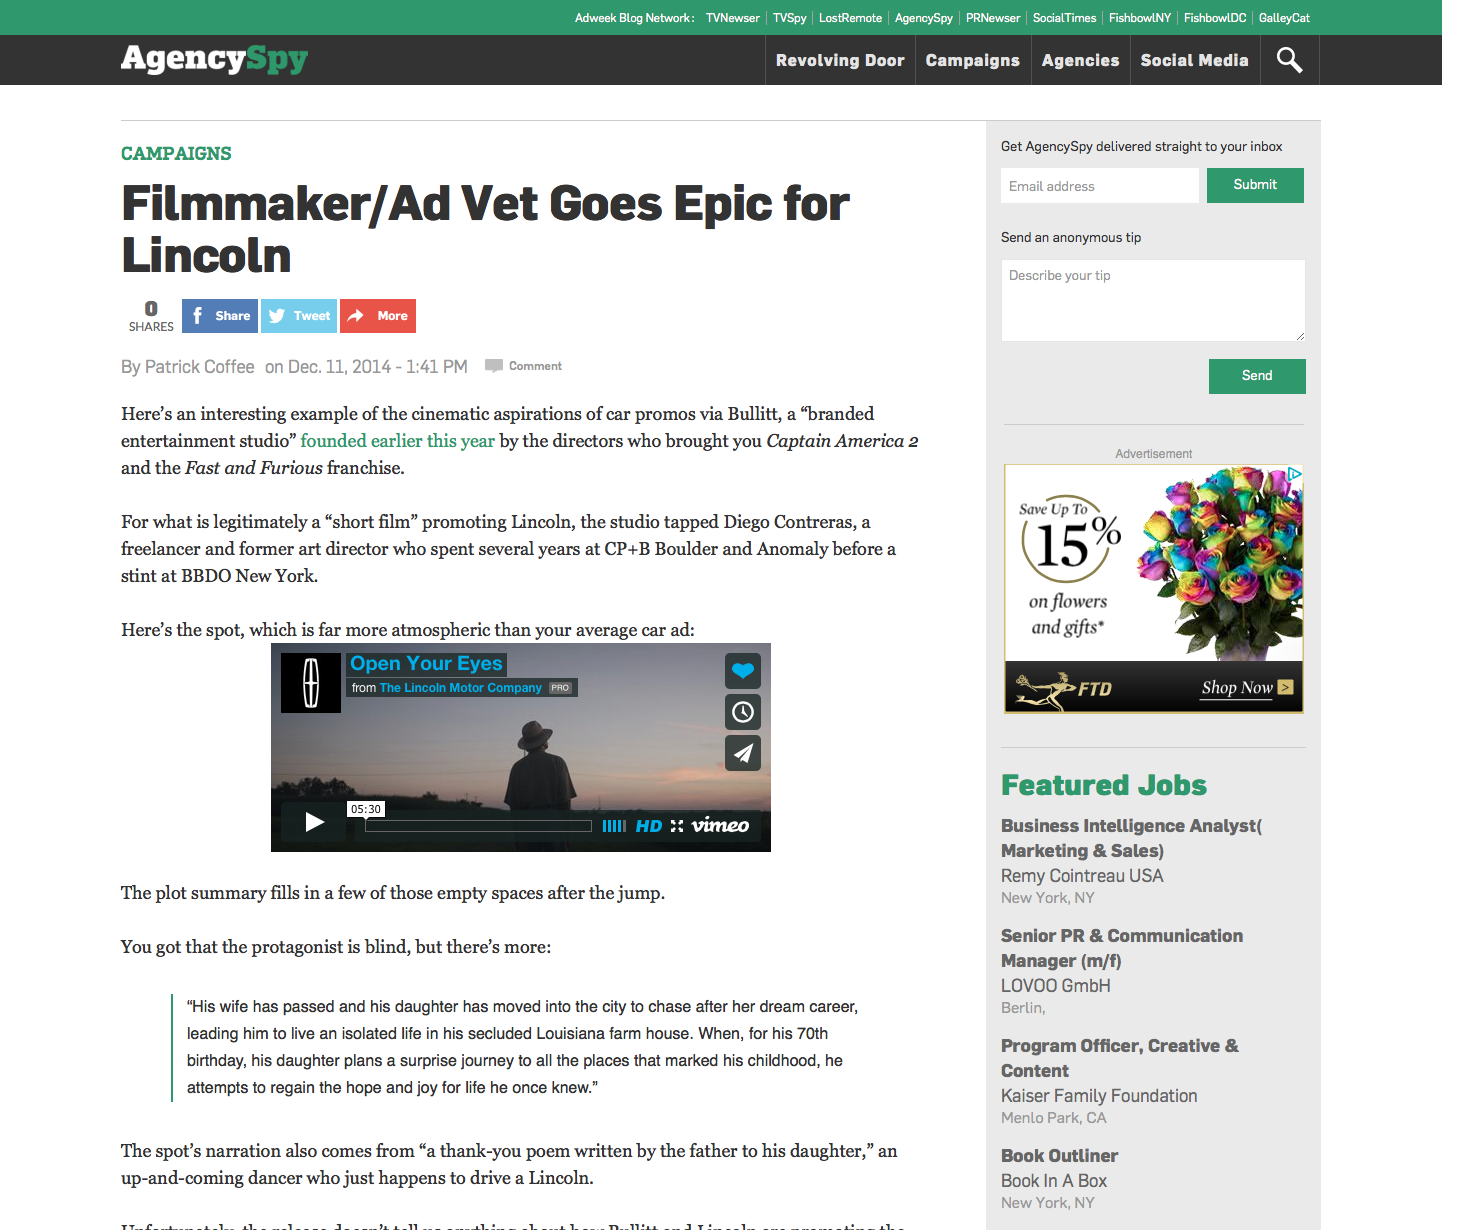 Feature article on Adweek's Agency Spy.